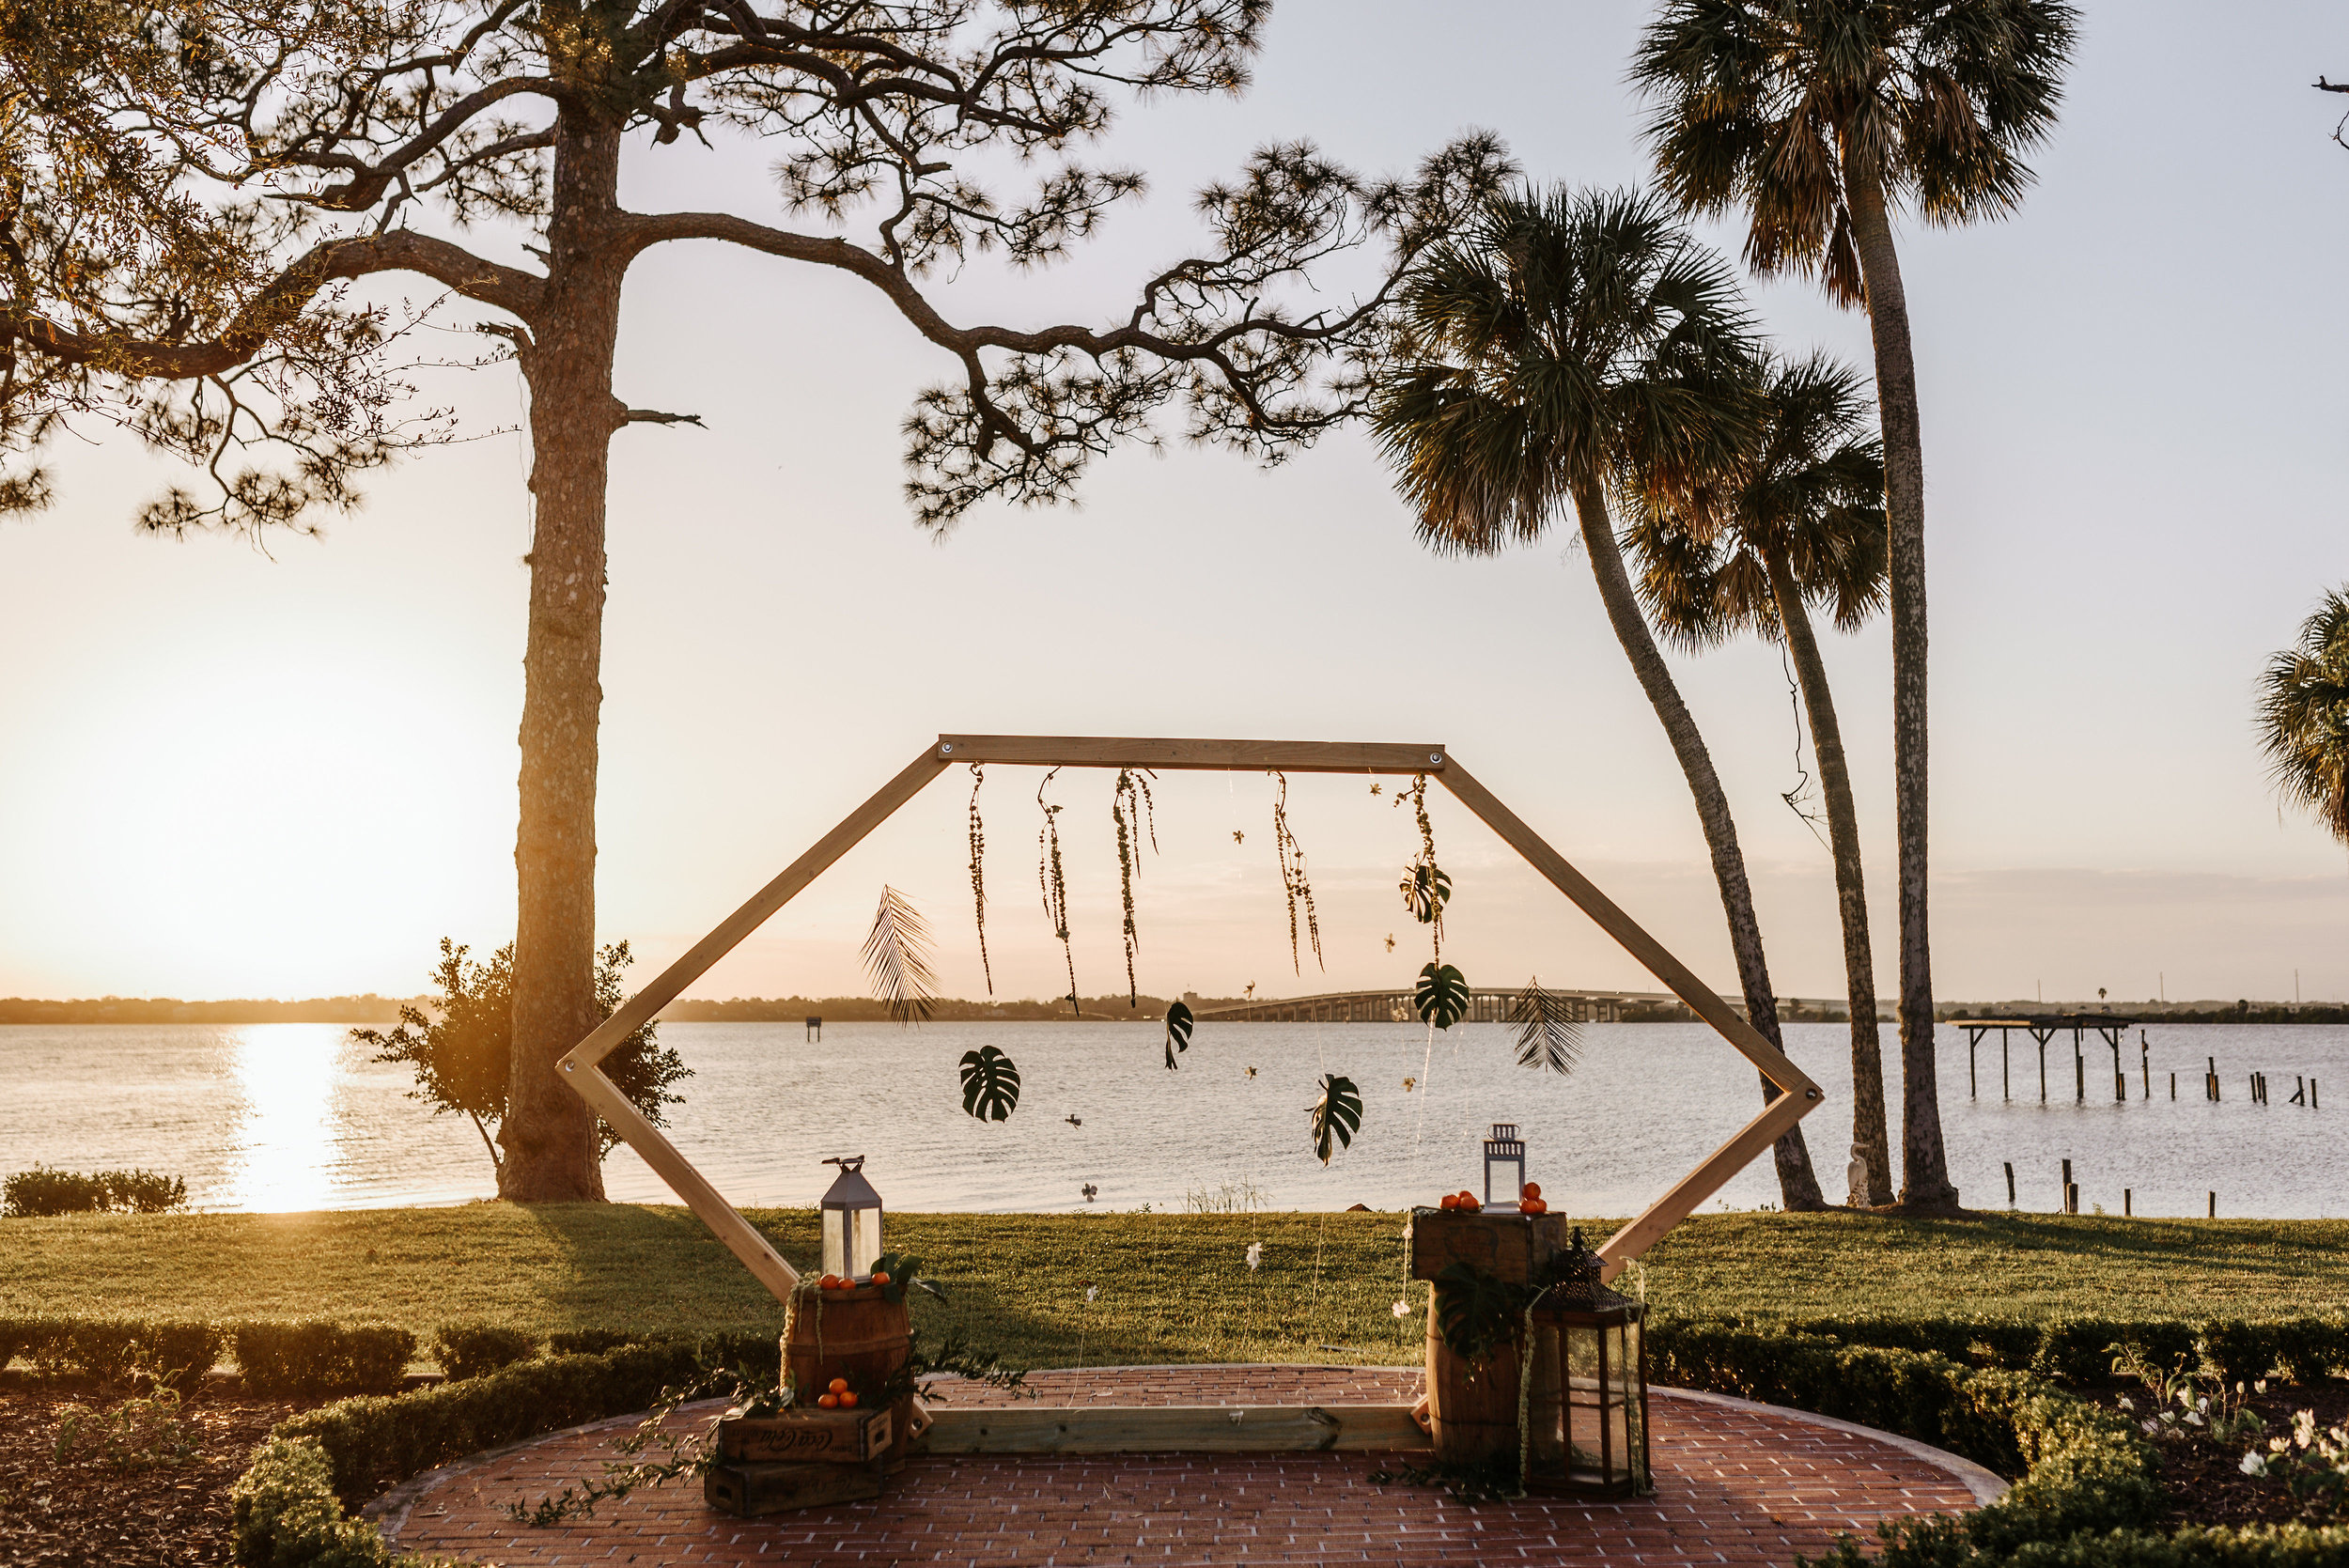 Field_Manor_Wedding_Styled_Shoot_Merritt_Island_Florida_Photography_by_V_1788.jpg